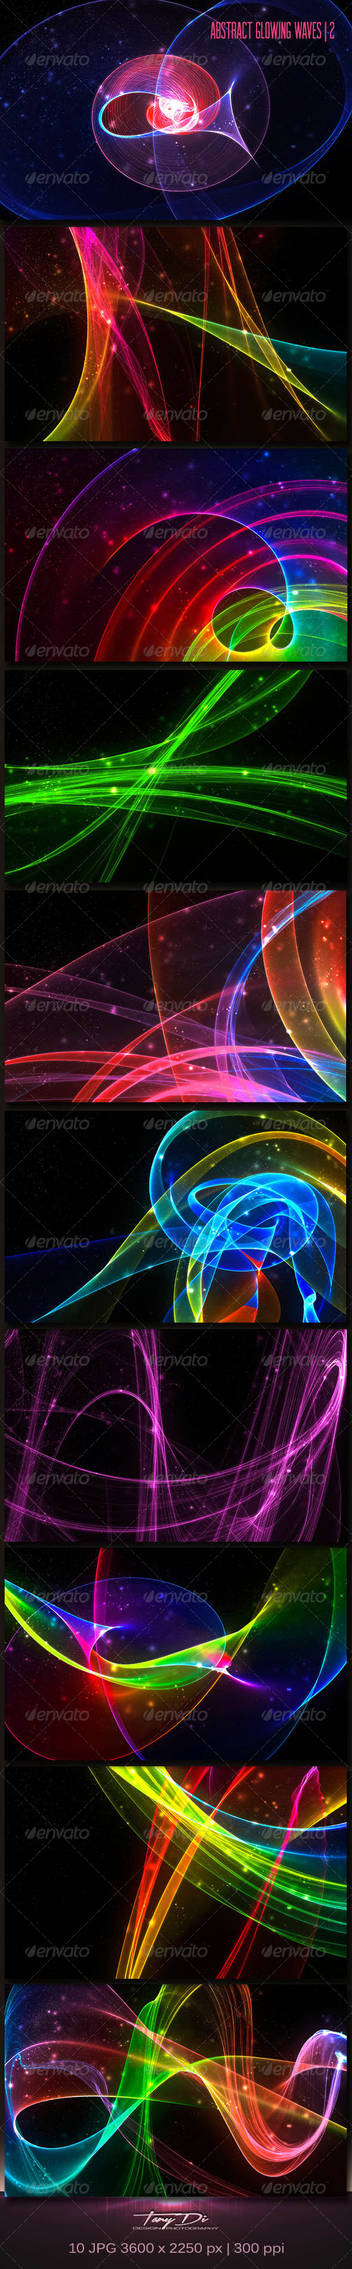 Abstract Glowing Waves 2 | GraphicRiver